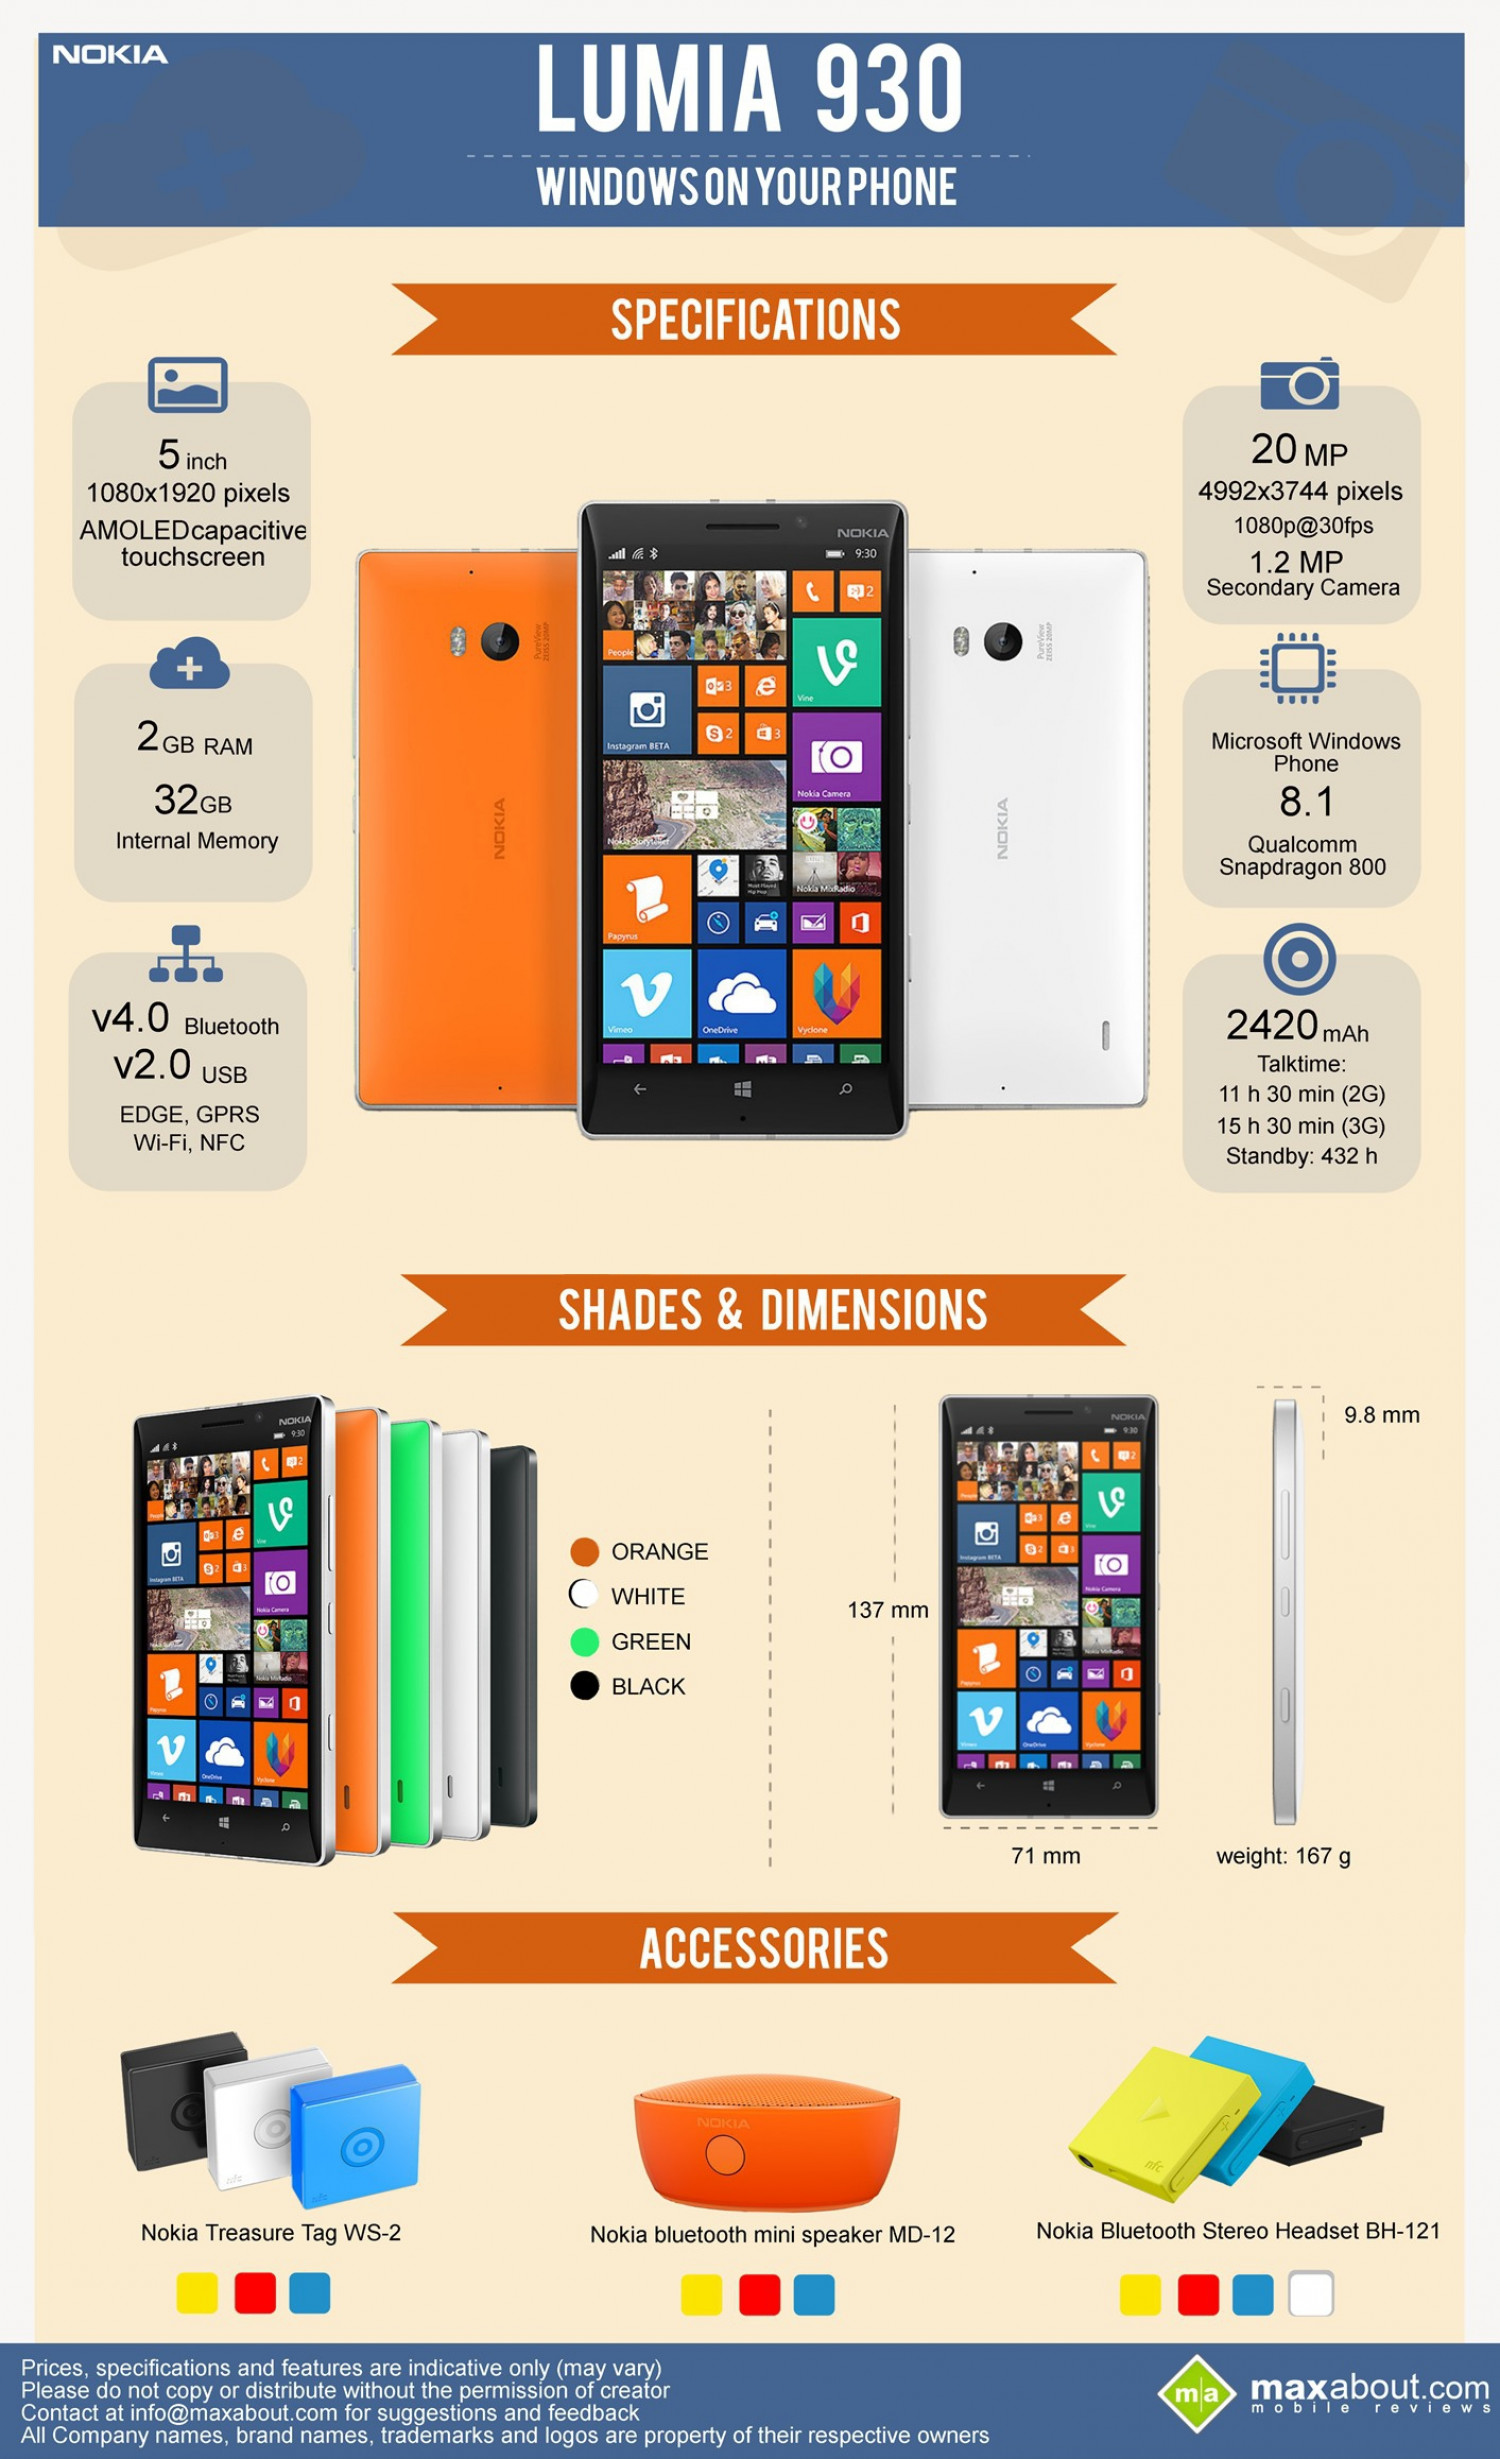 Nokia Lumia 930: Windows on Your Phone Infographic